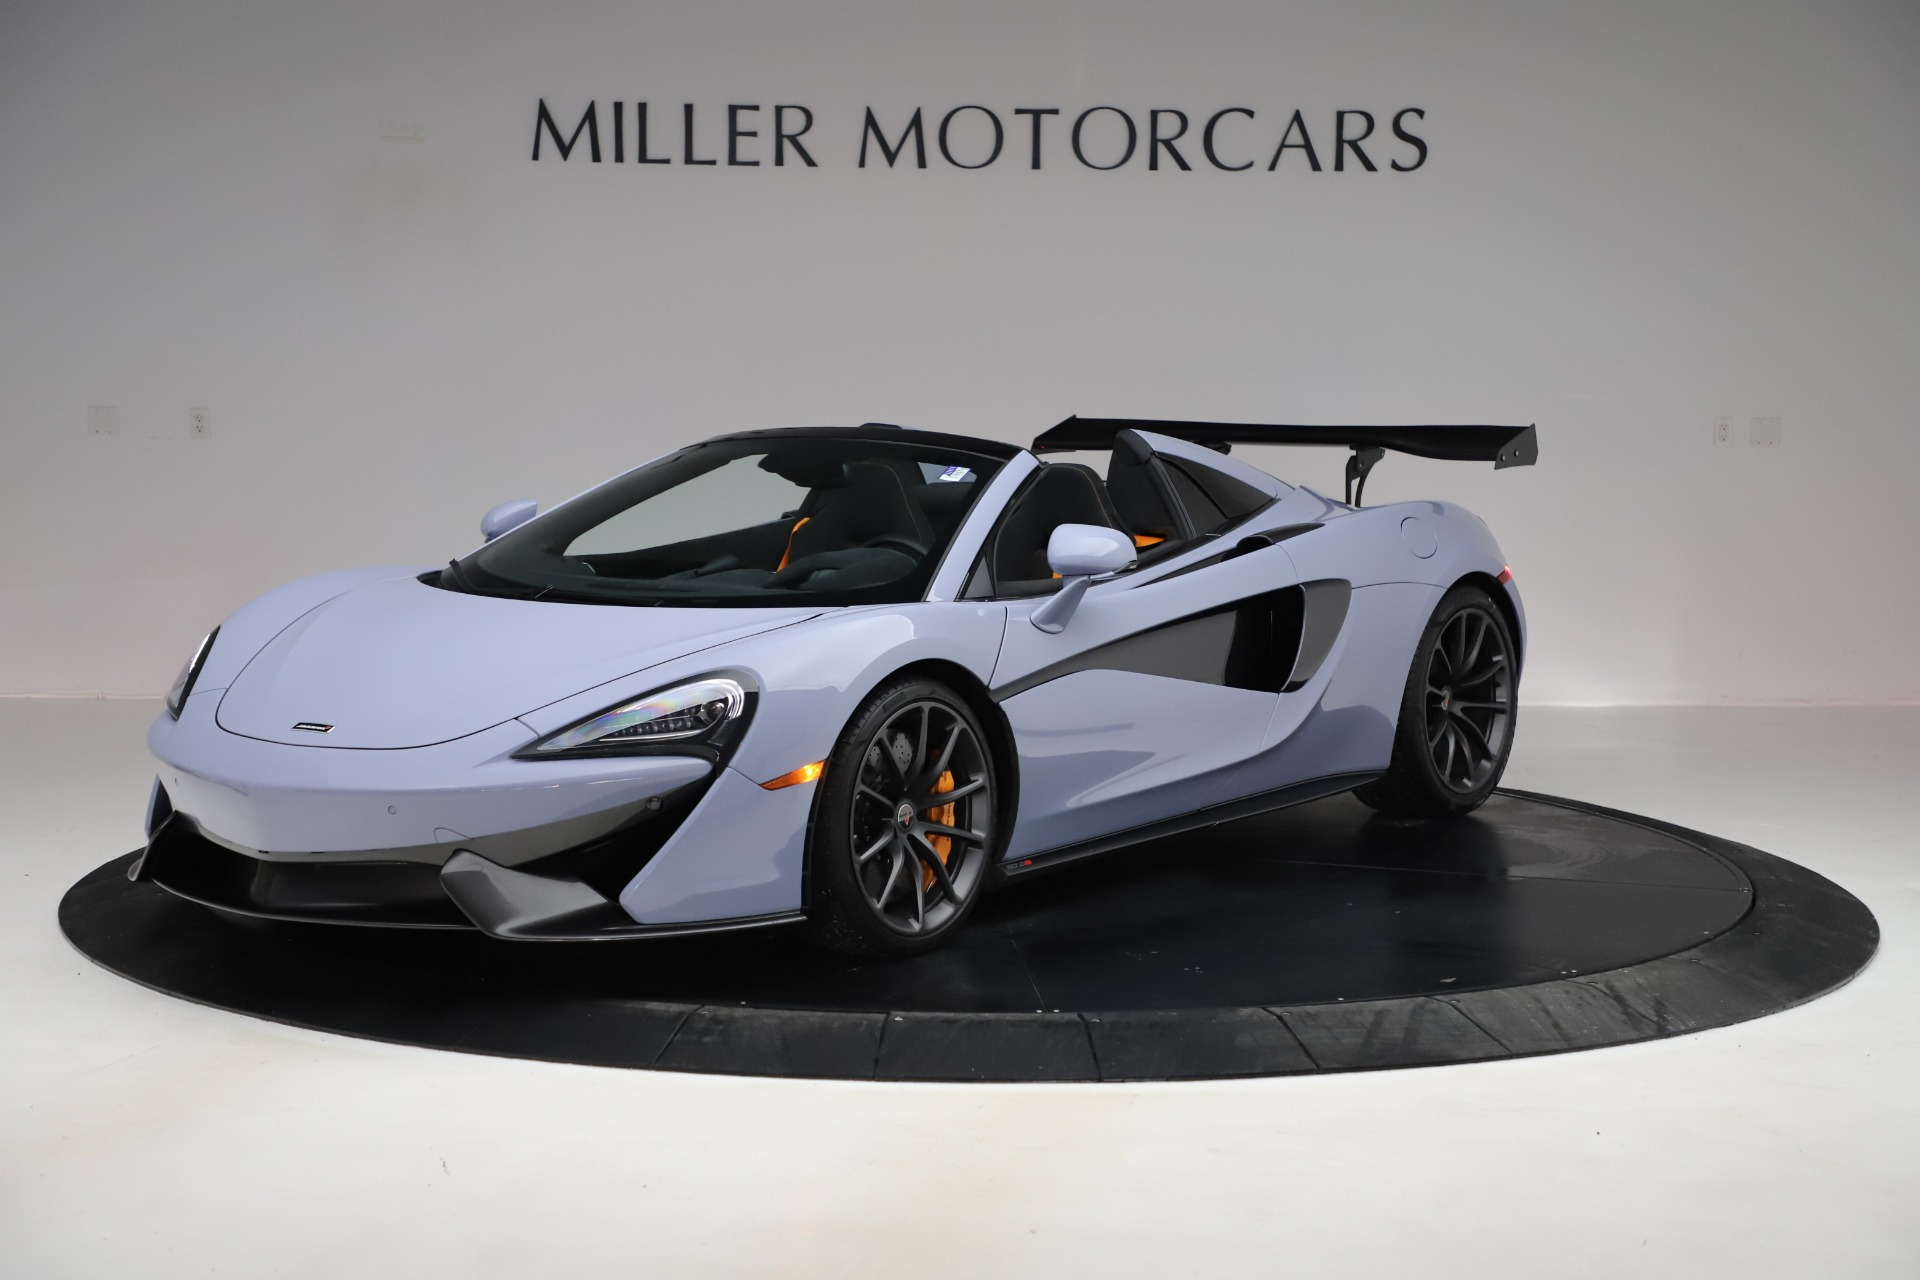 Used 2018 McLaren 570S Spider for sale $167,900 at Rolls-Royce Motor Cars Greenwich in Greenwich CT 06830 1